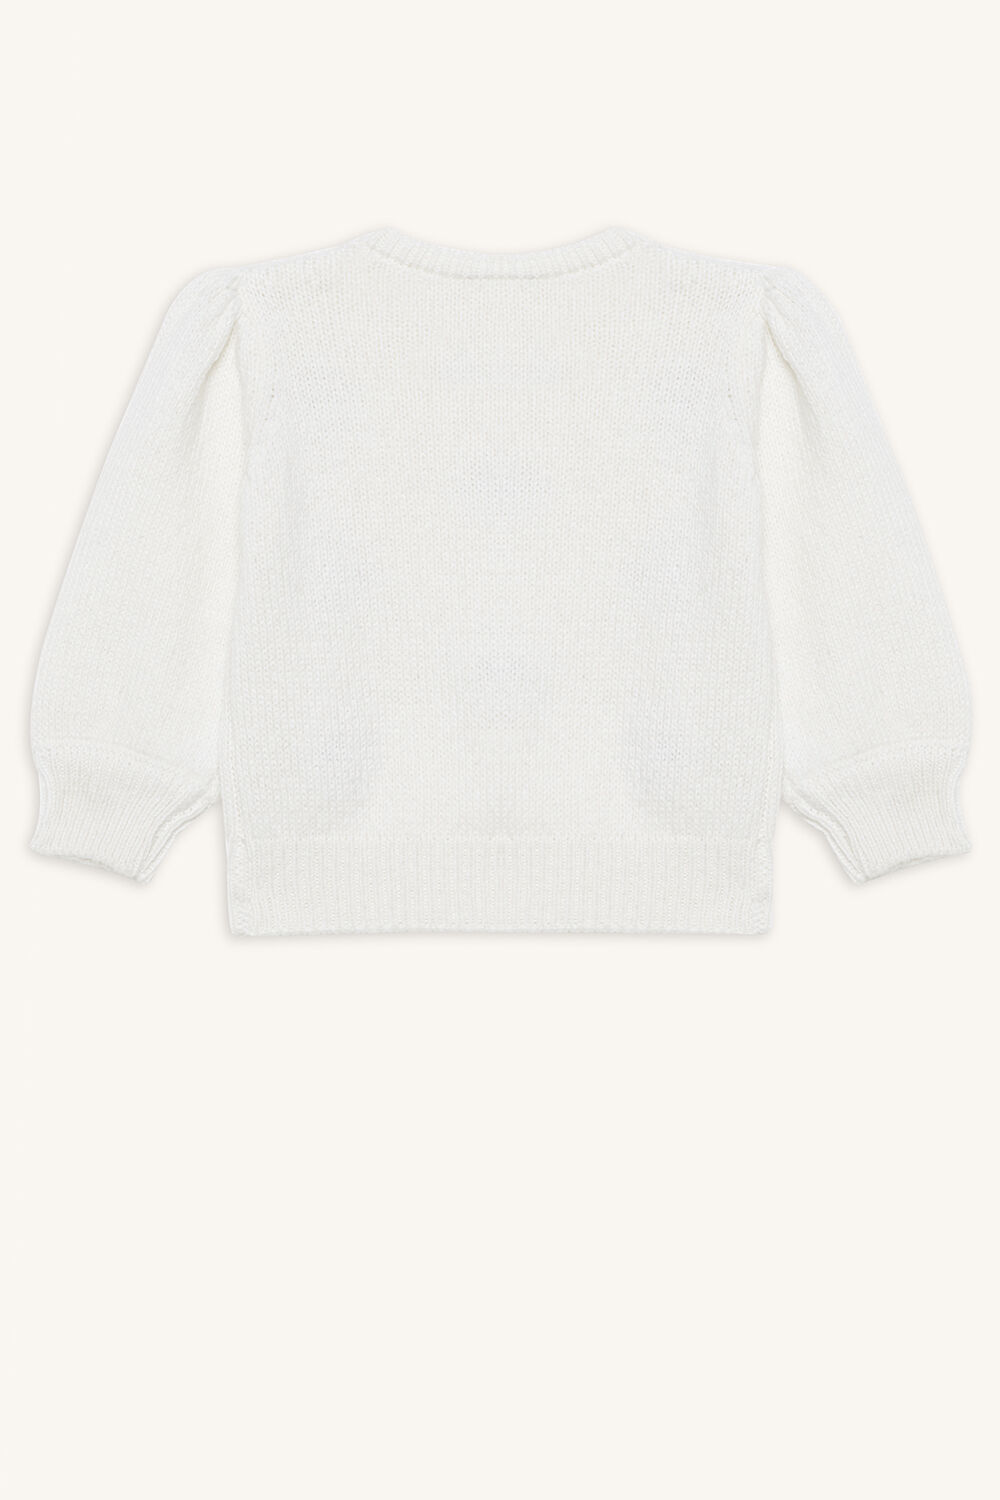 SPOT POM POM SWEATER in colour GARDENIA